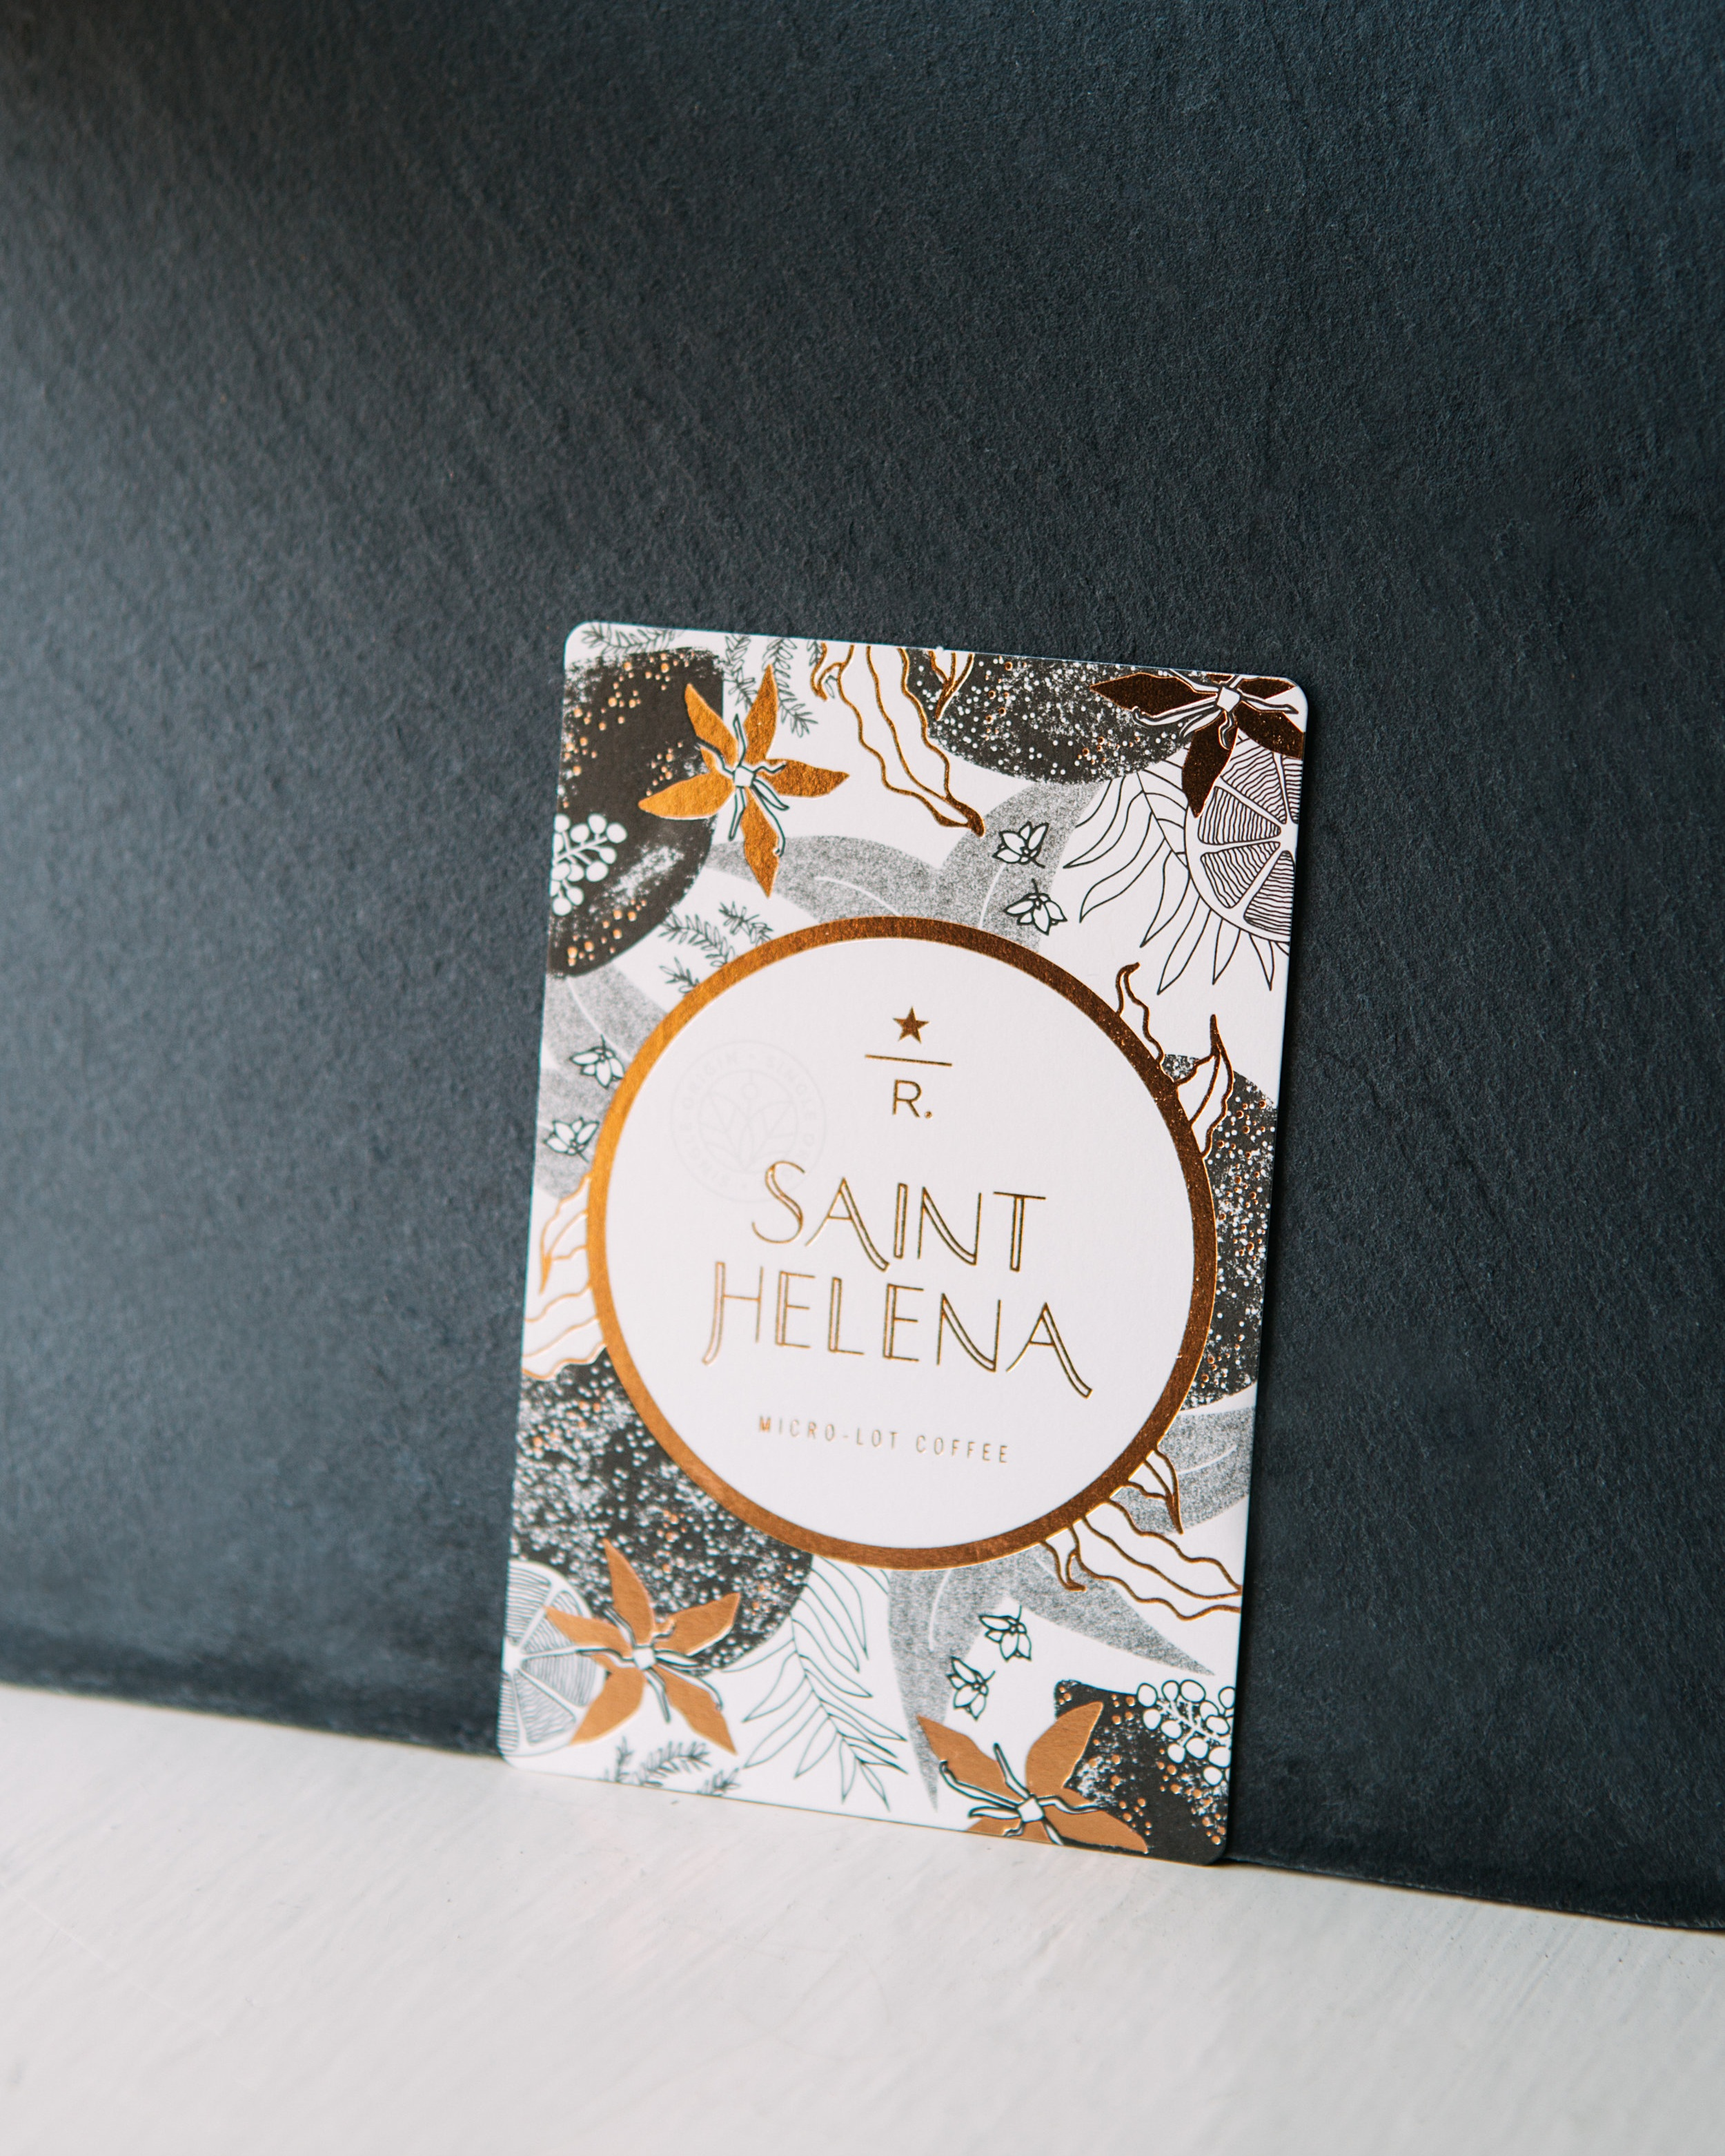 starbucks reserve coffee card design nelle clark